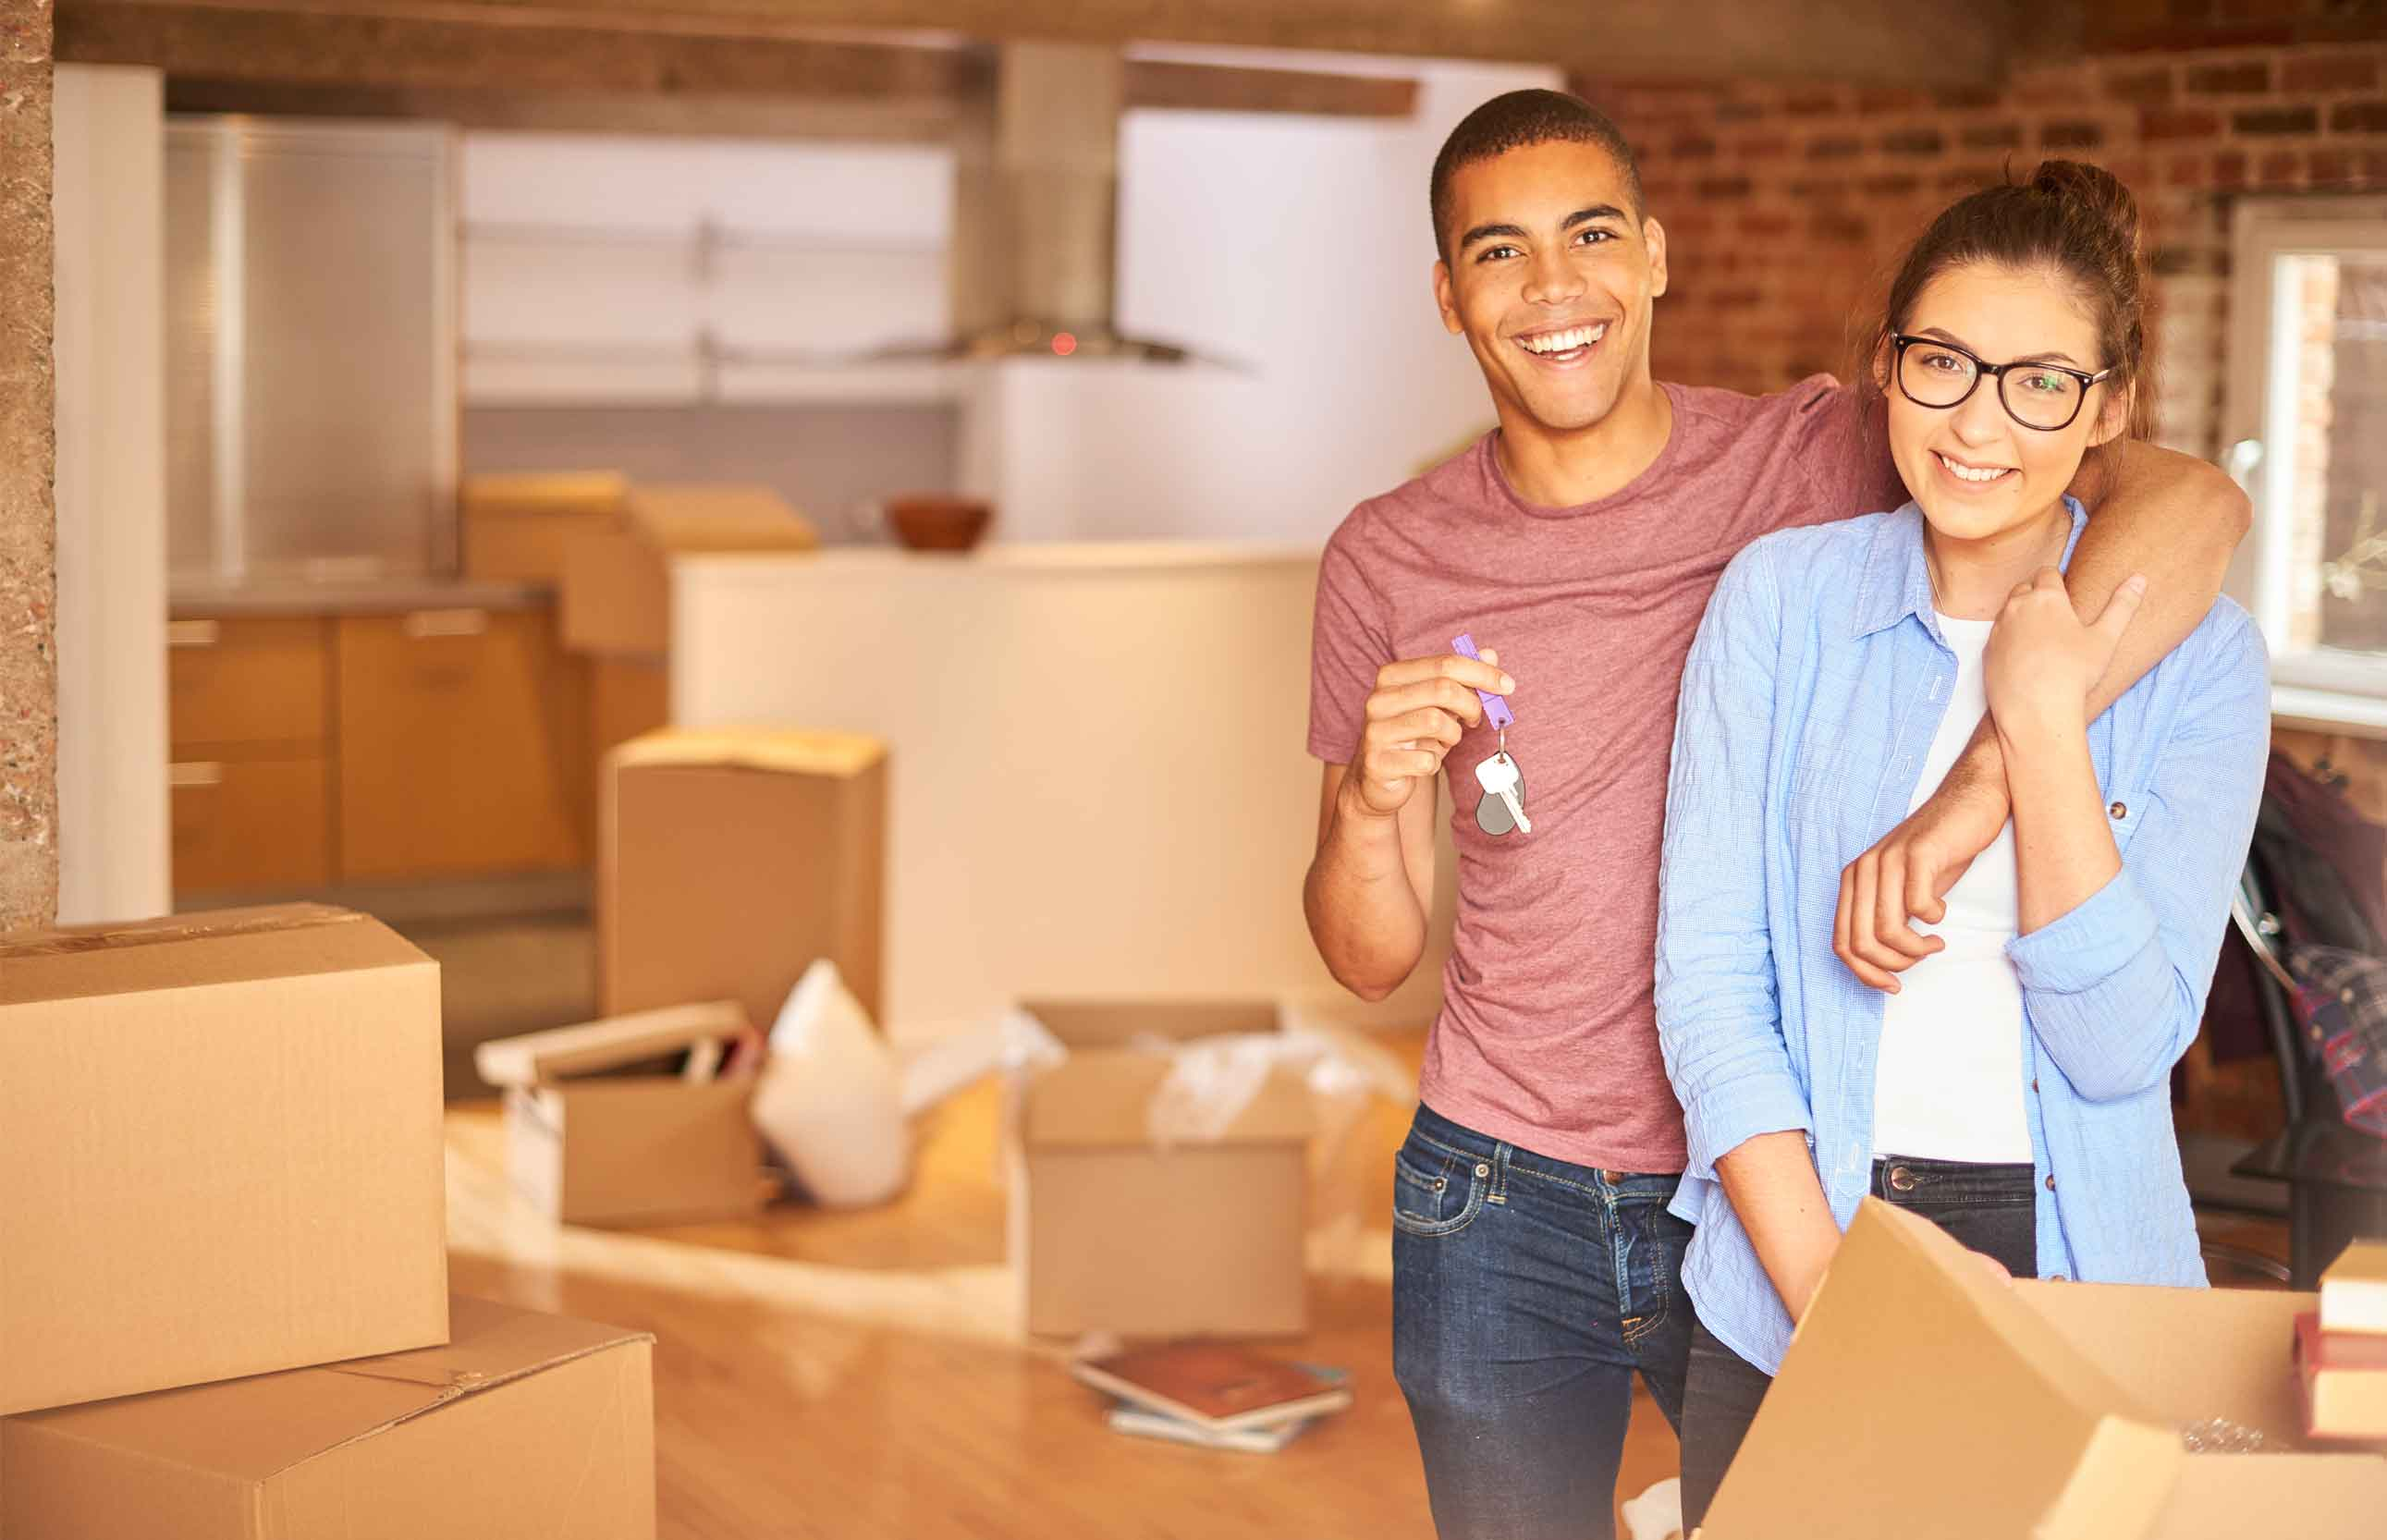 Here's what you need to know about buying a home in 2017.